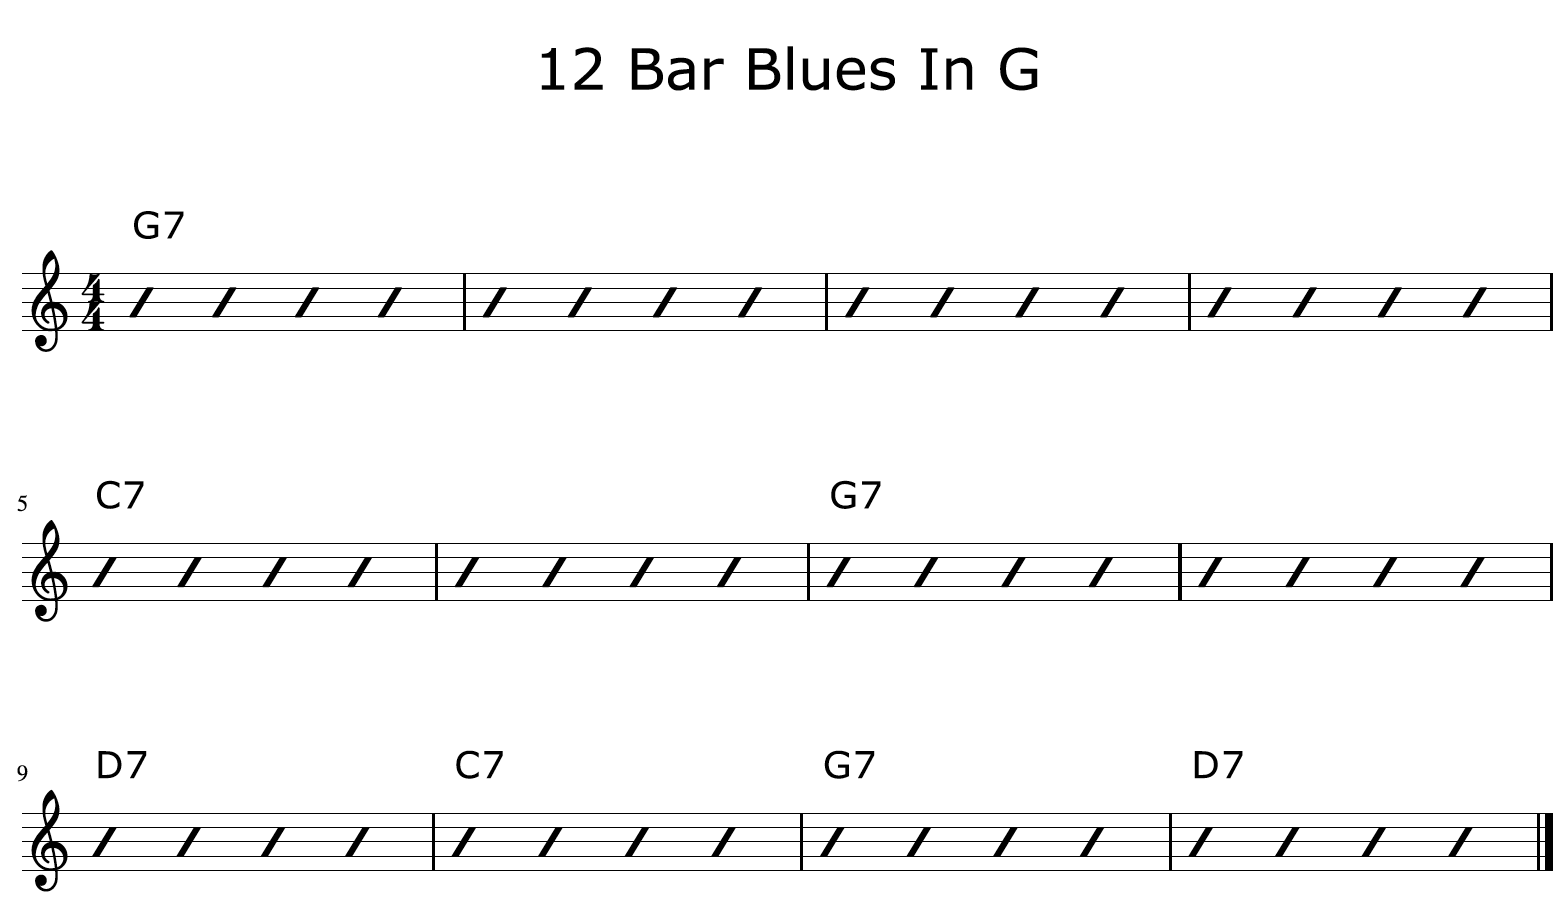 12 Bar Blues Progression